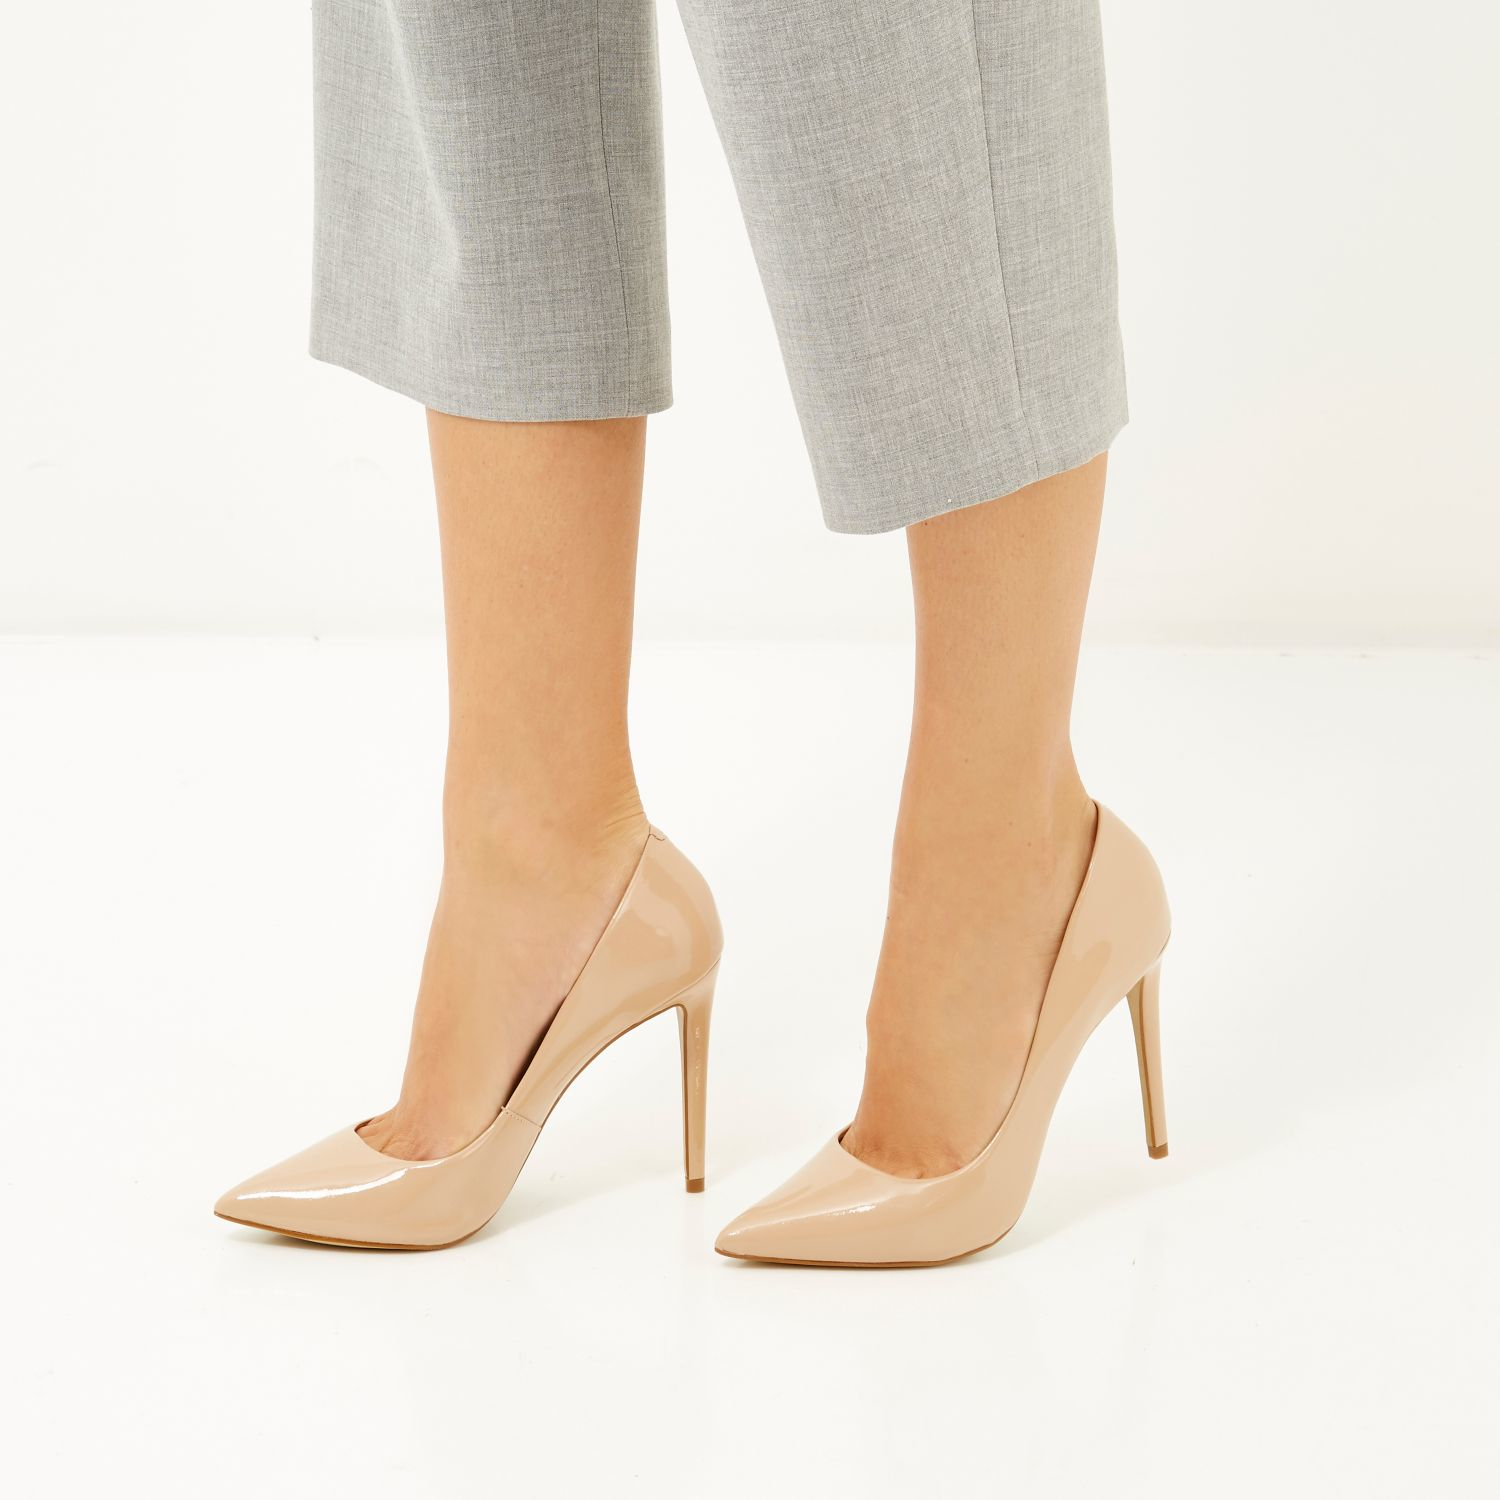 cc1506efa33 River Island Nude Pink Patent Leather Court Shoes